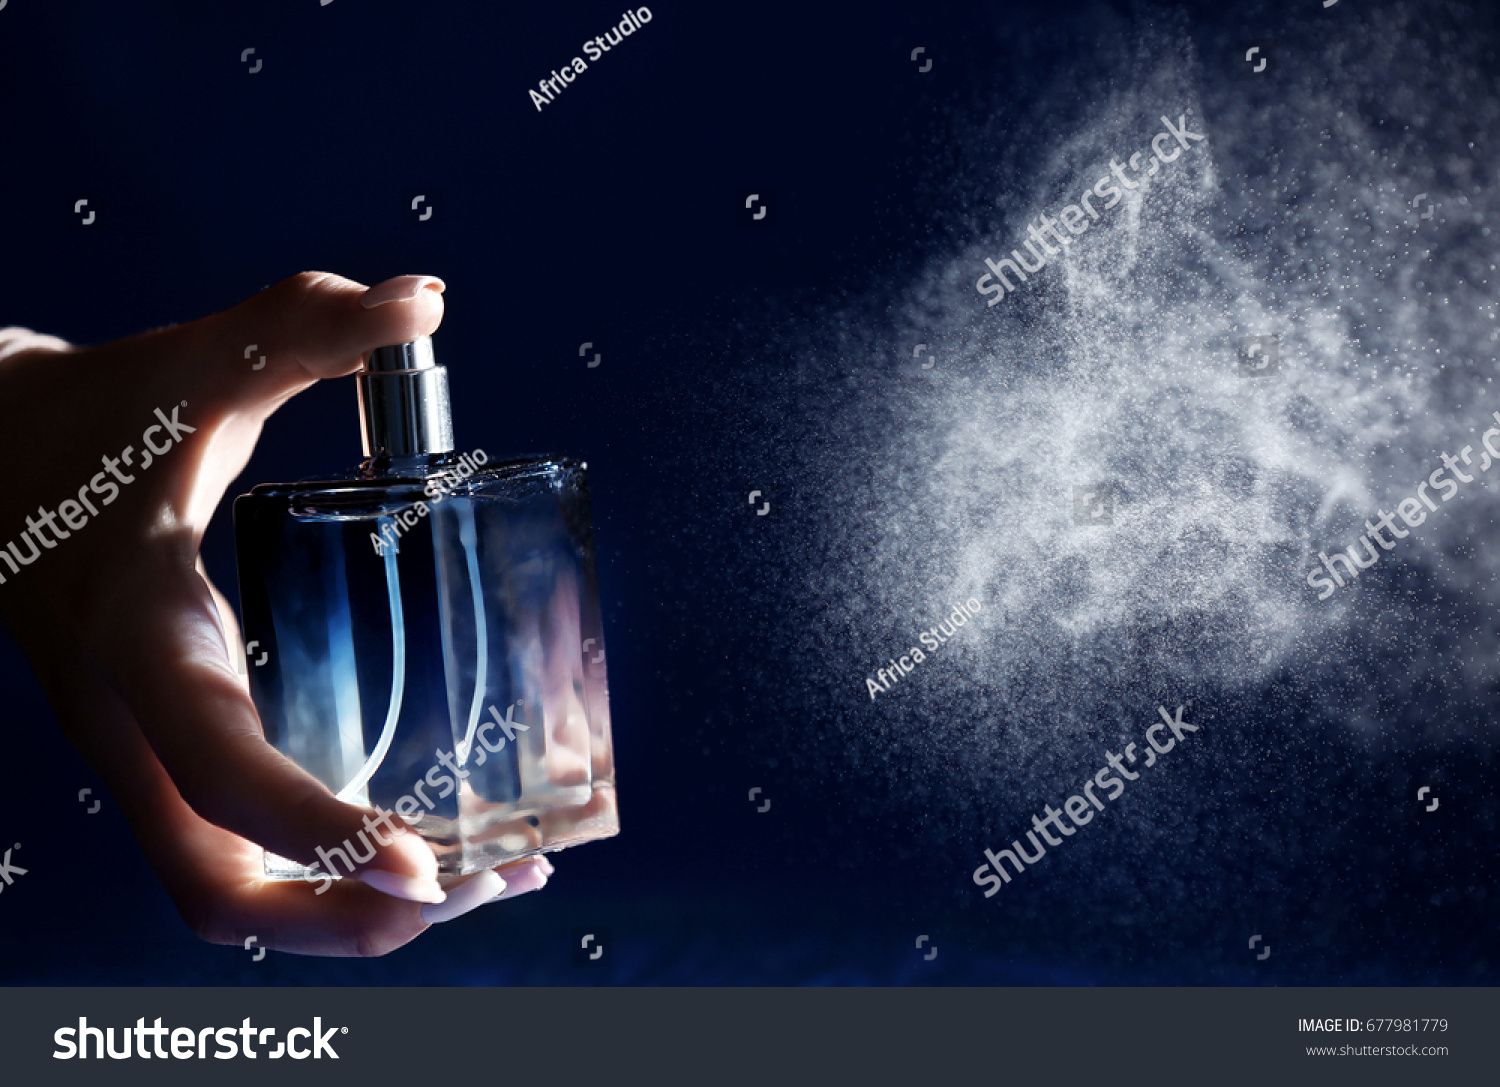 Woman spraying perfume on dark background, closeup